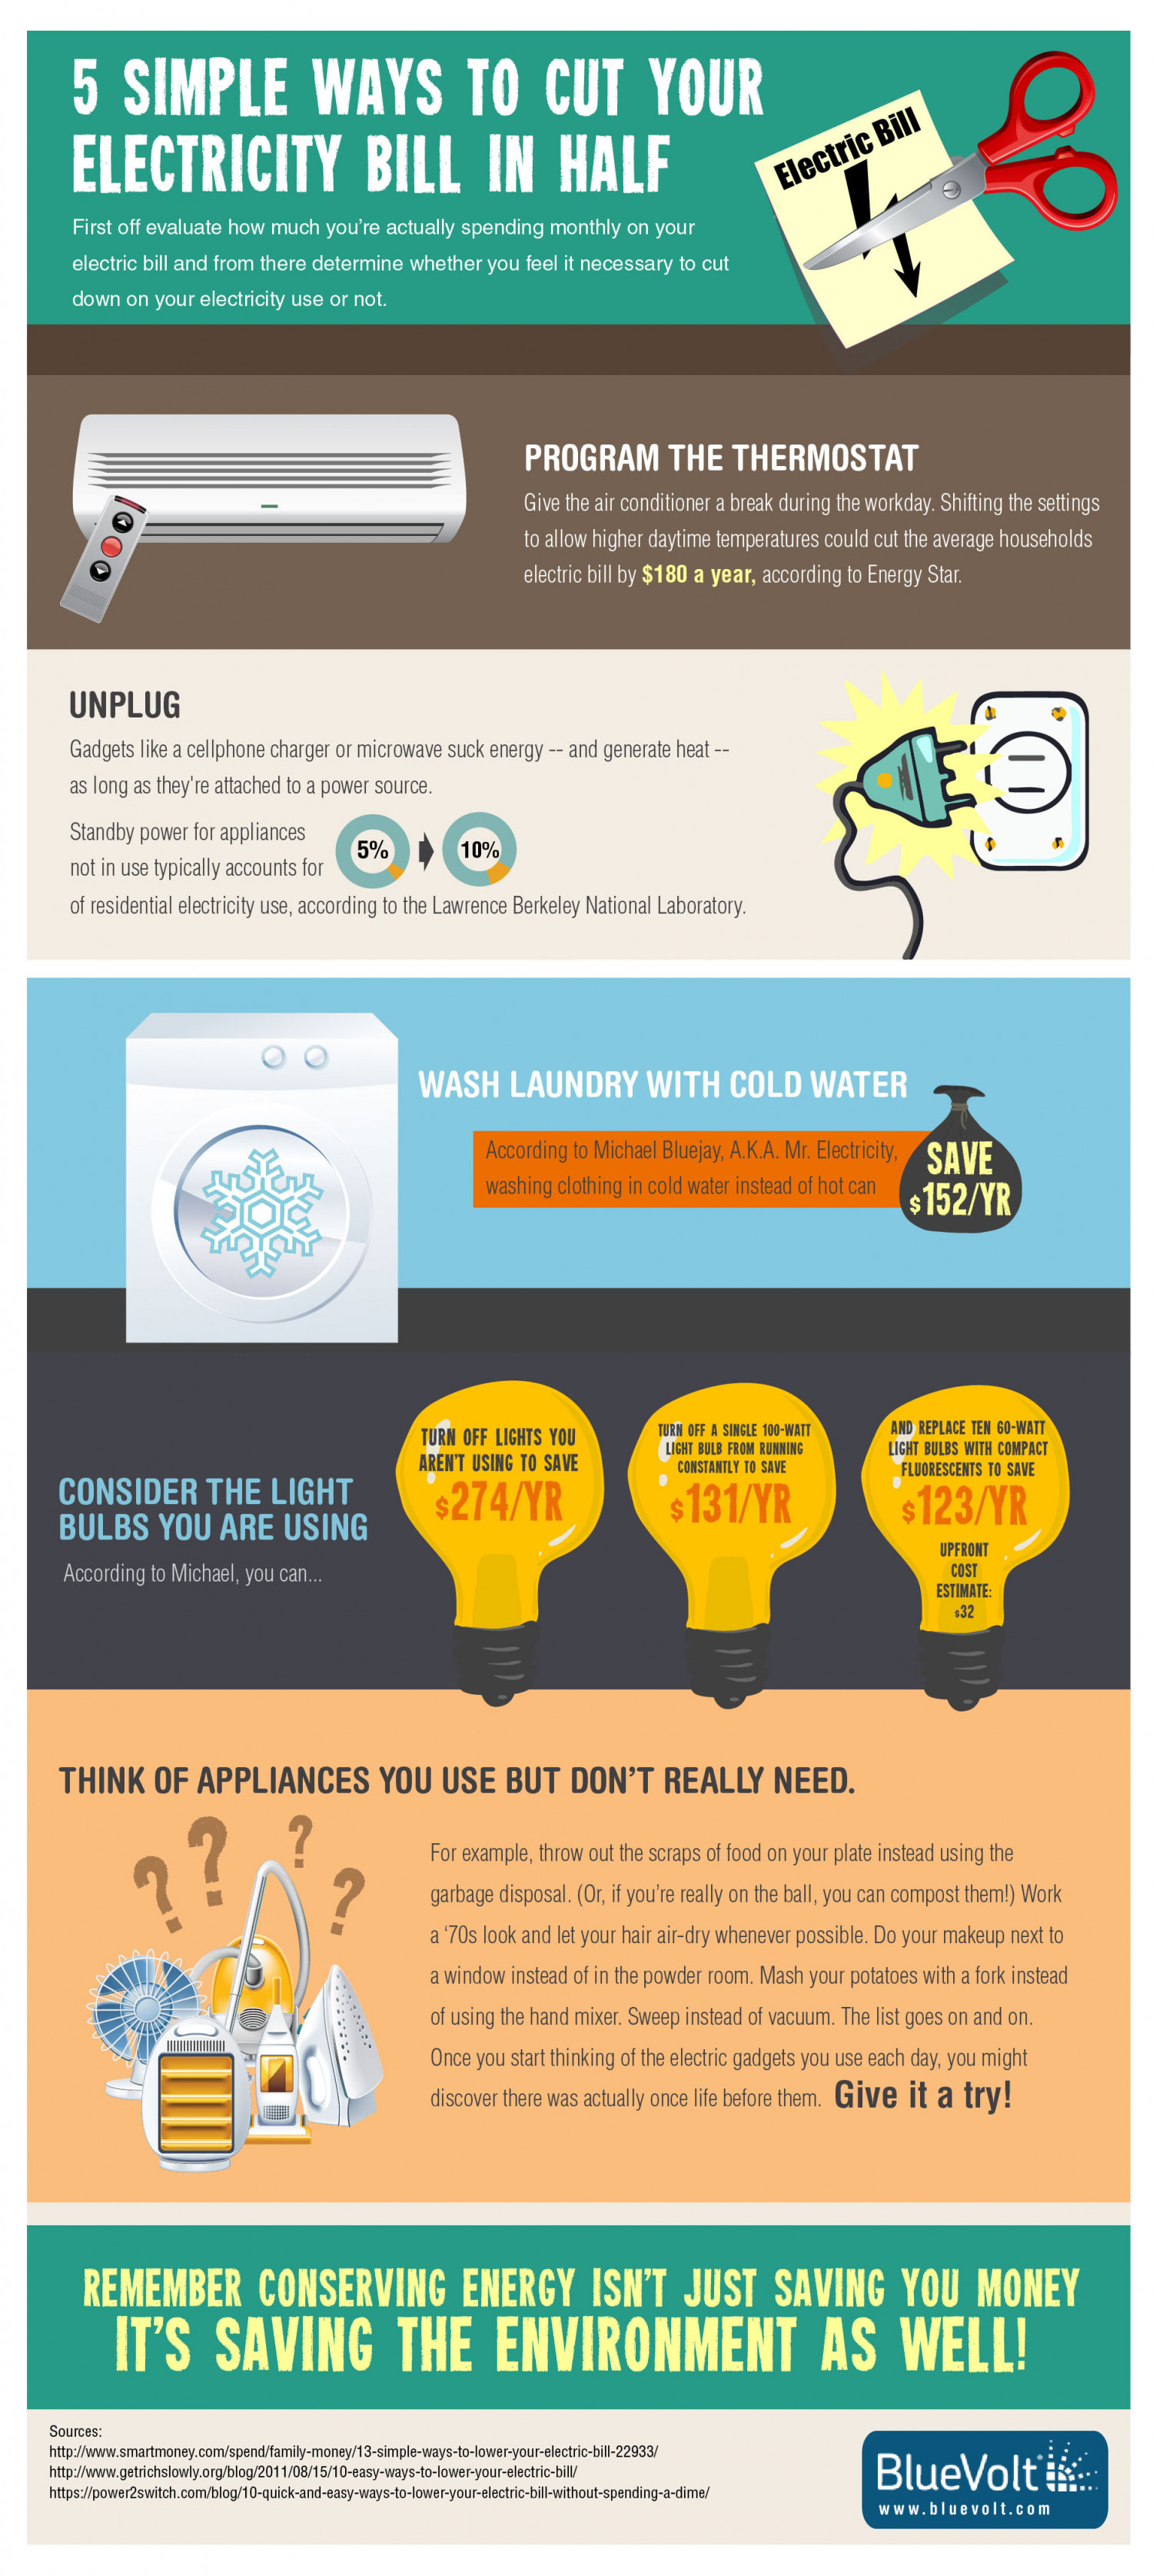 5 Simple Ways to Cut your Electricity Bill in Half  Infographic